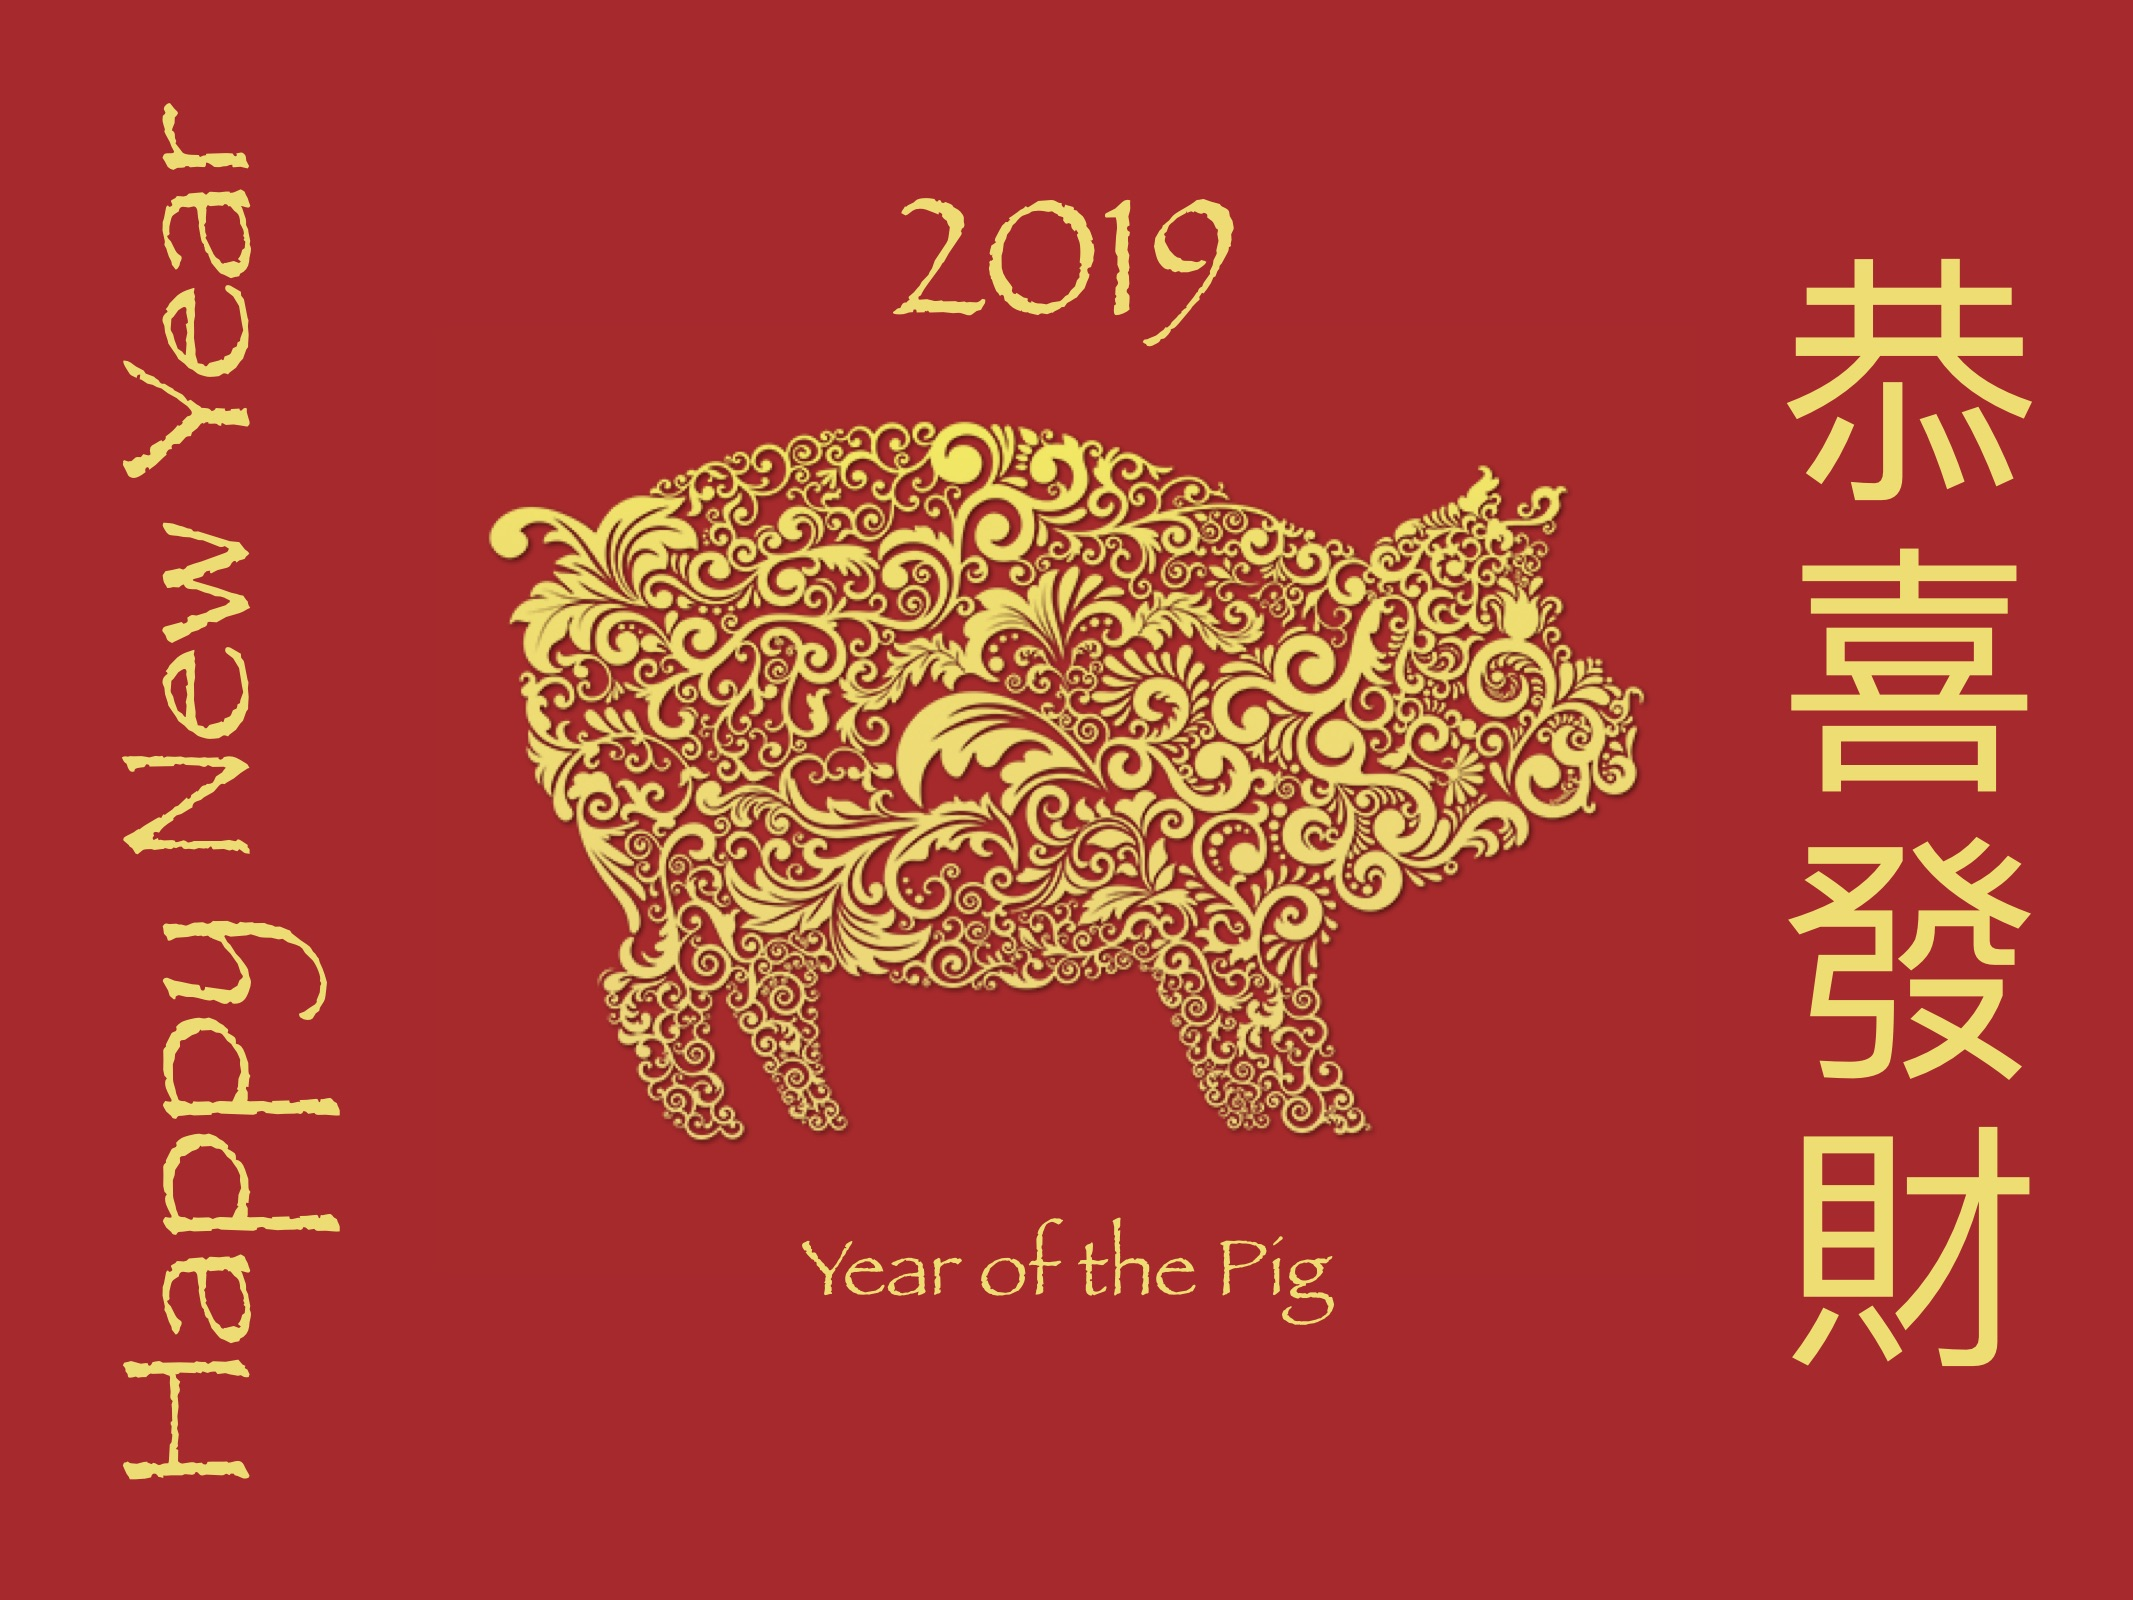 2019 Chinese New Year Invite Front and Back JPEG.jpg